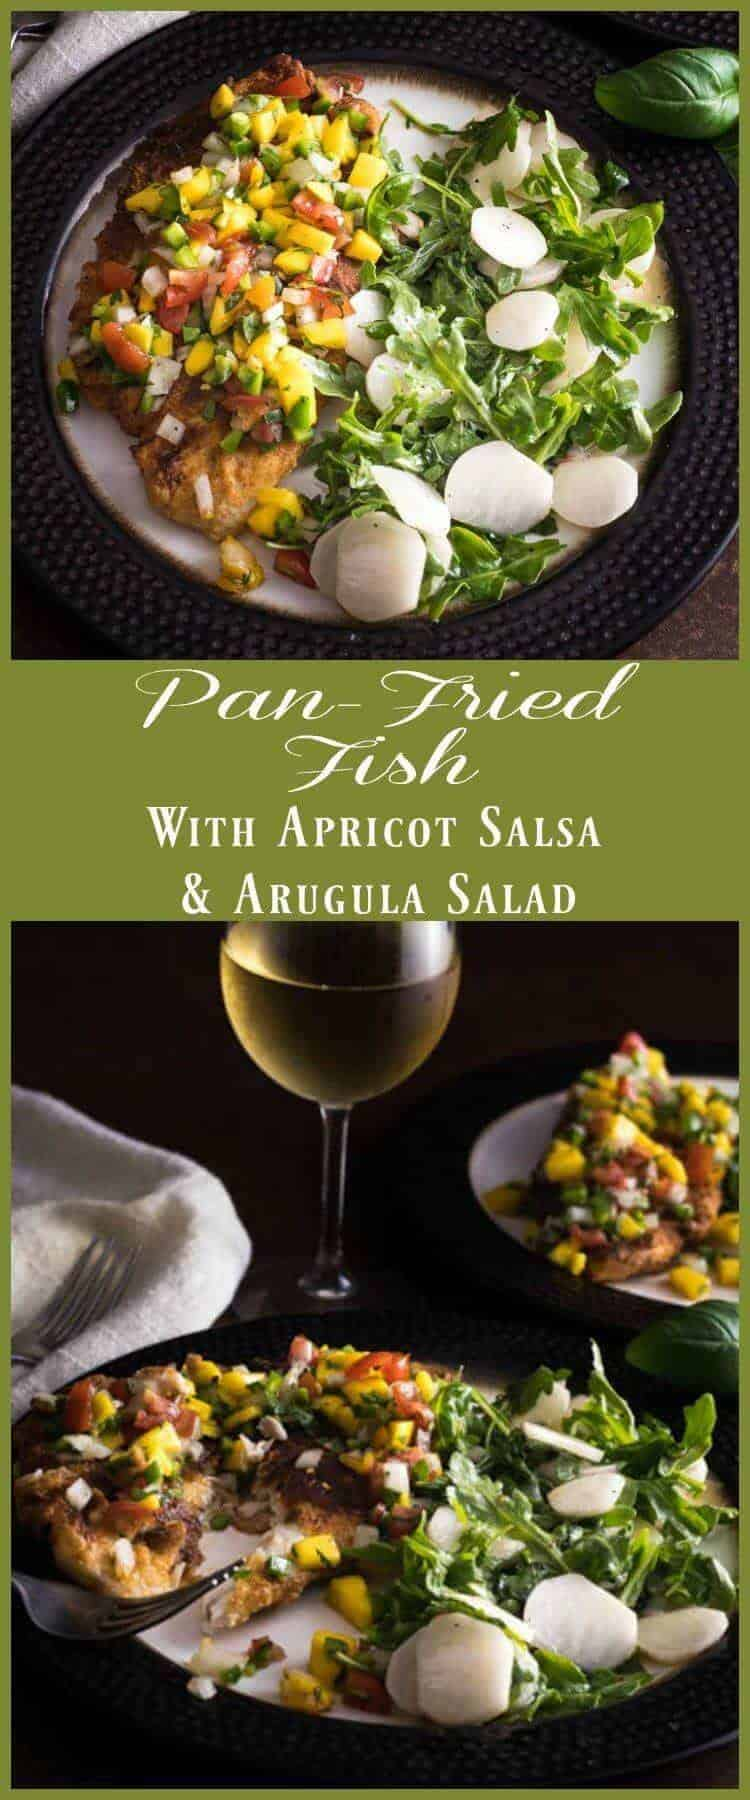 Pan-Fried Fish with Apricot Salsa and Arugula Salad - A simple fish dish that uses some of spring's most beautiful produce - apricots, arugula, radishes! fish recipes | fruit salsas | arugula